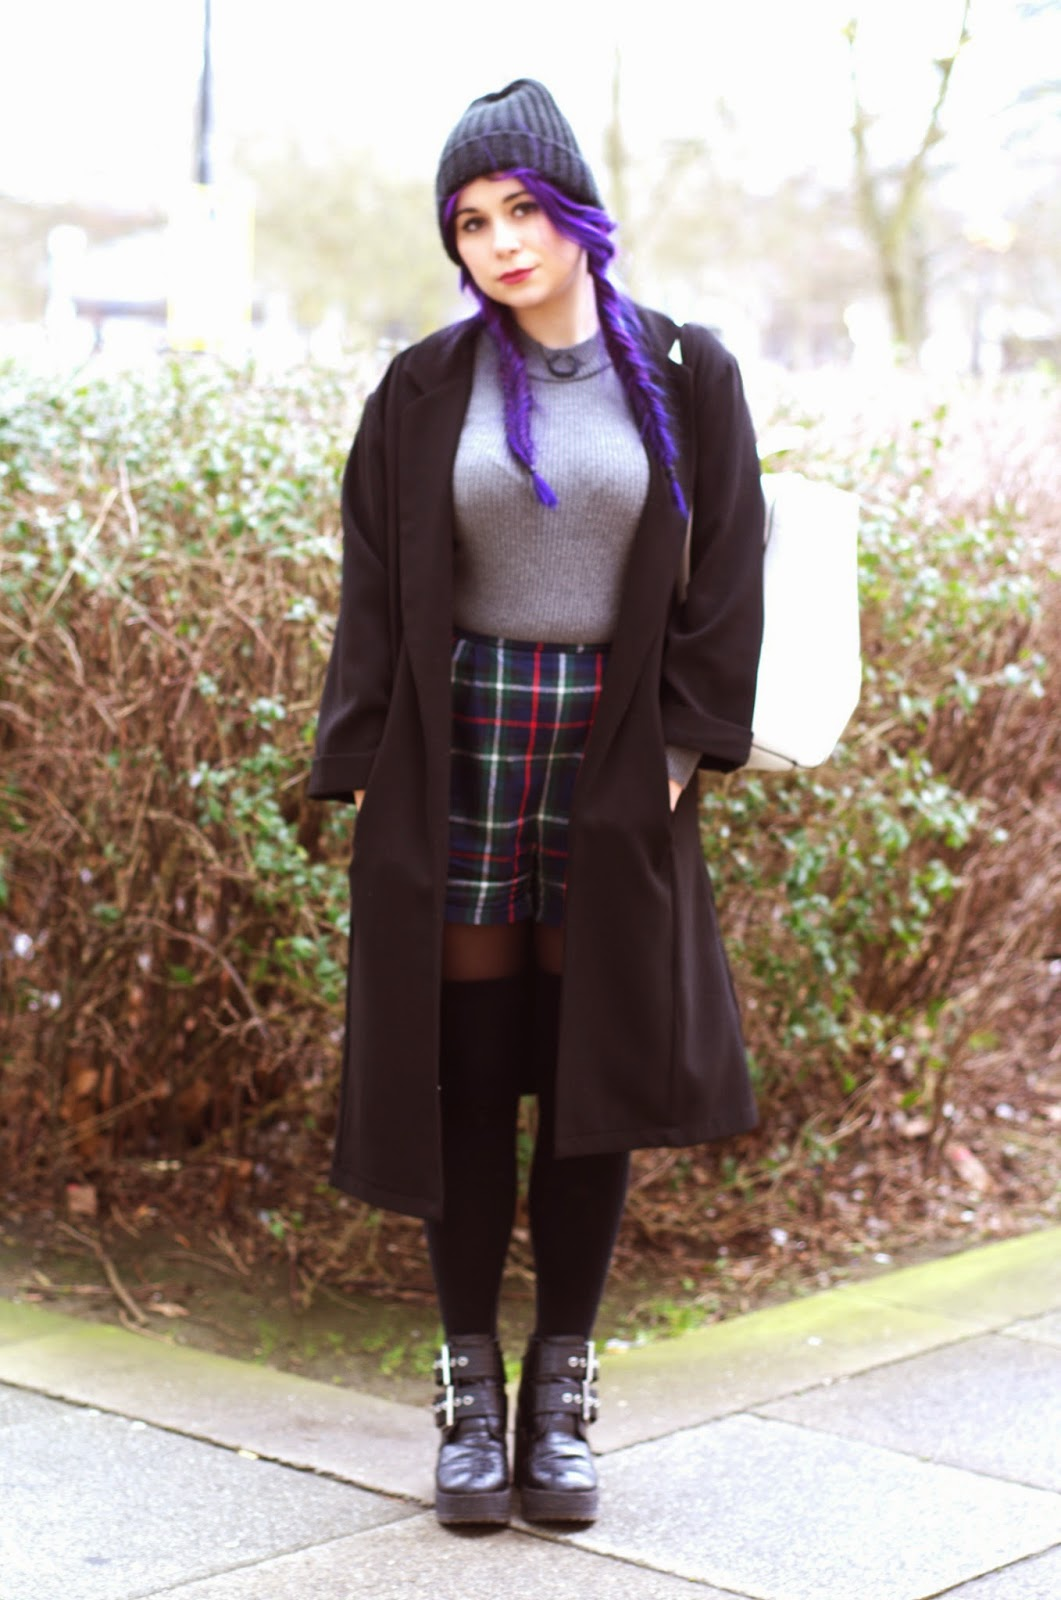 Duster Coat / Jacket grunge styling